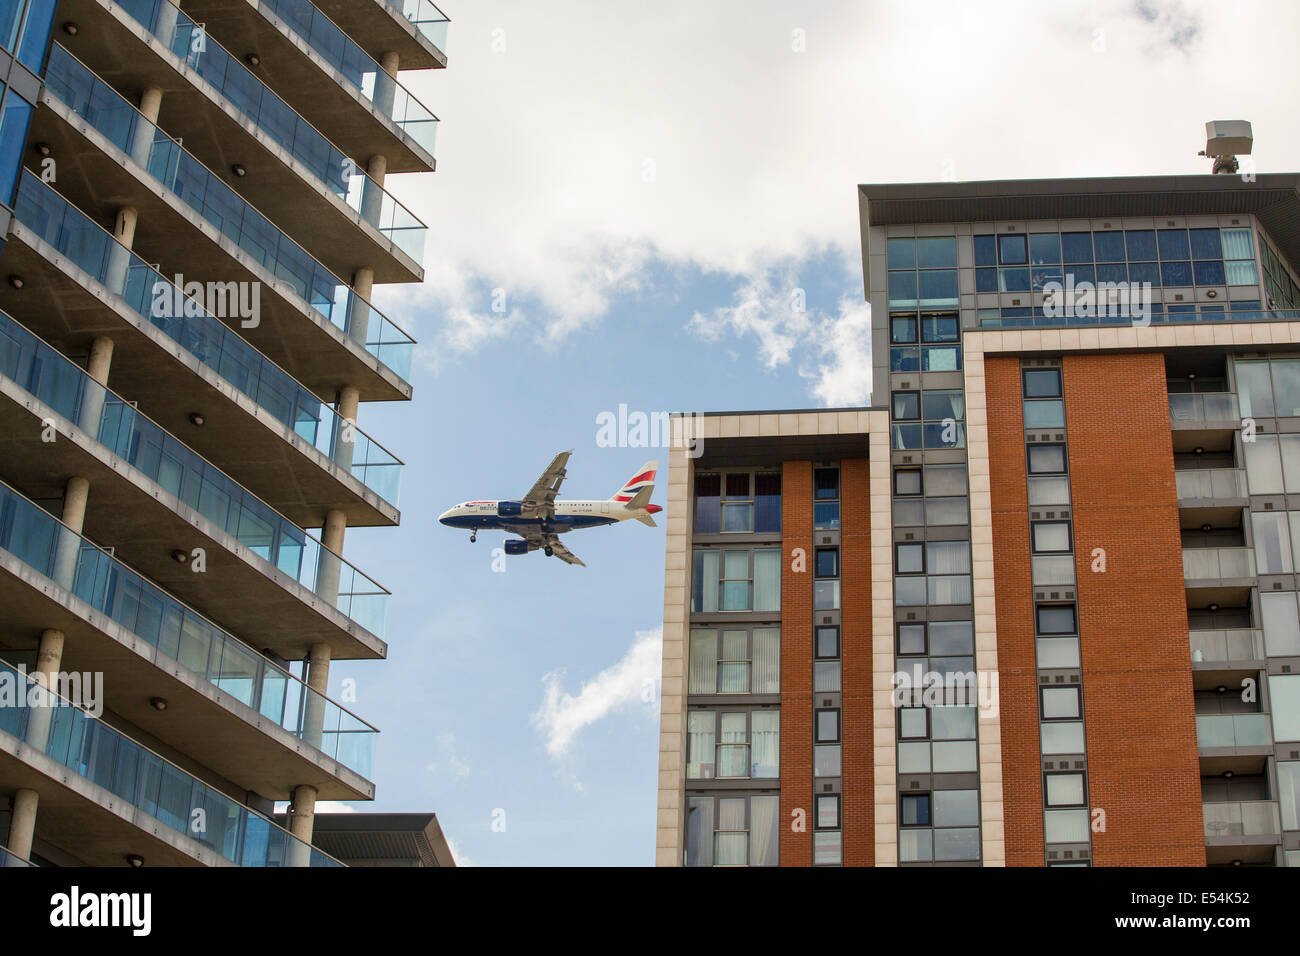 Un avion battant vacances passé les blocs comme il arrive en terre à City Airport, London, UK. Photo Stock